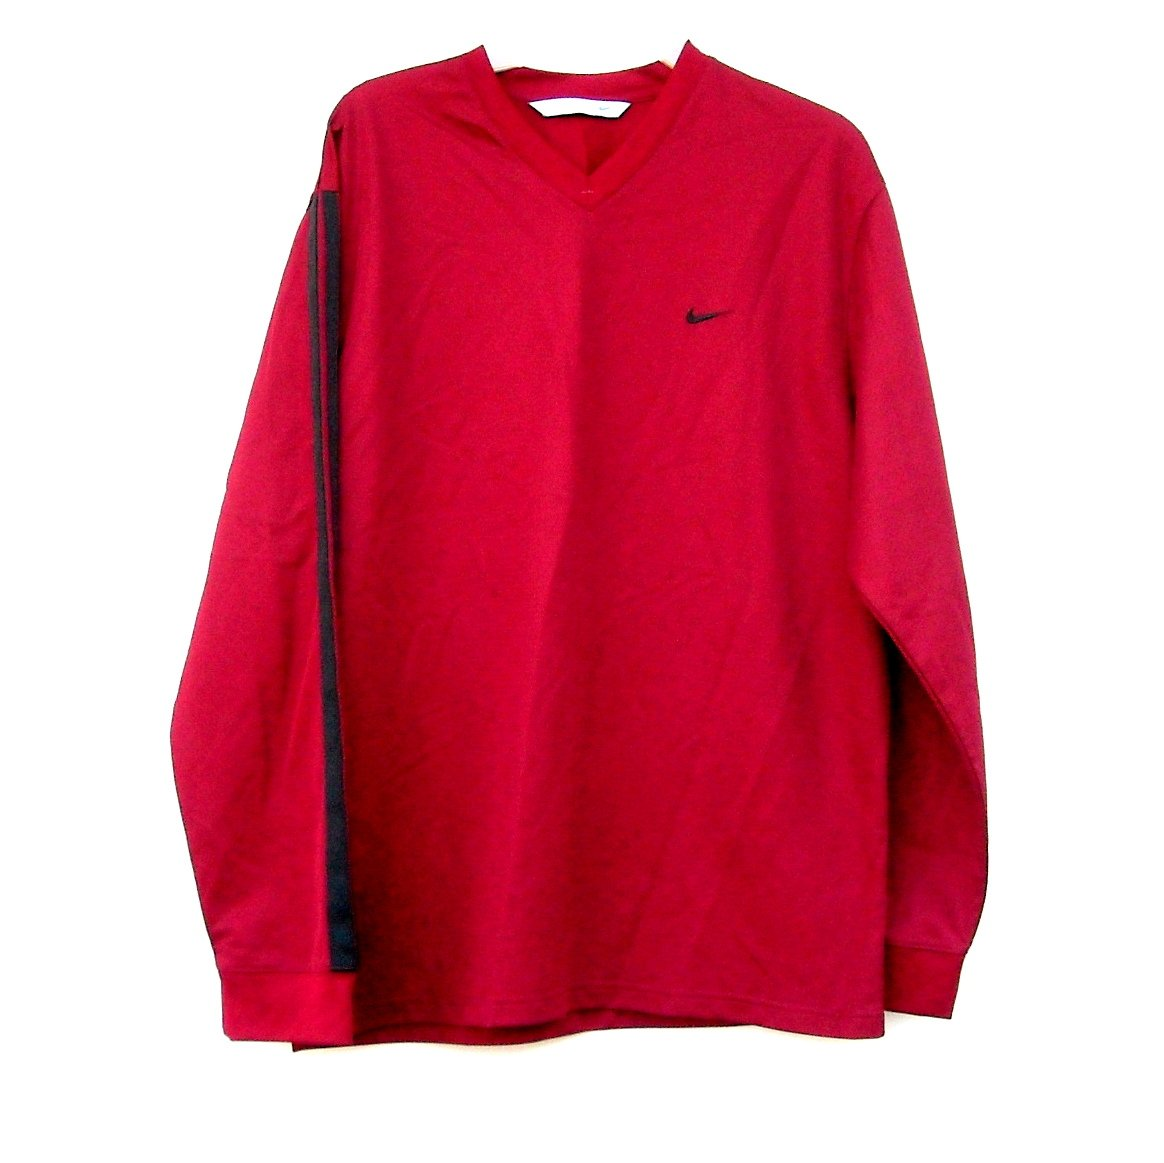 Nike Vneck Maroon Red Training Top